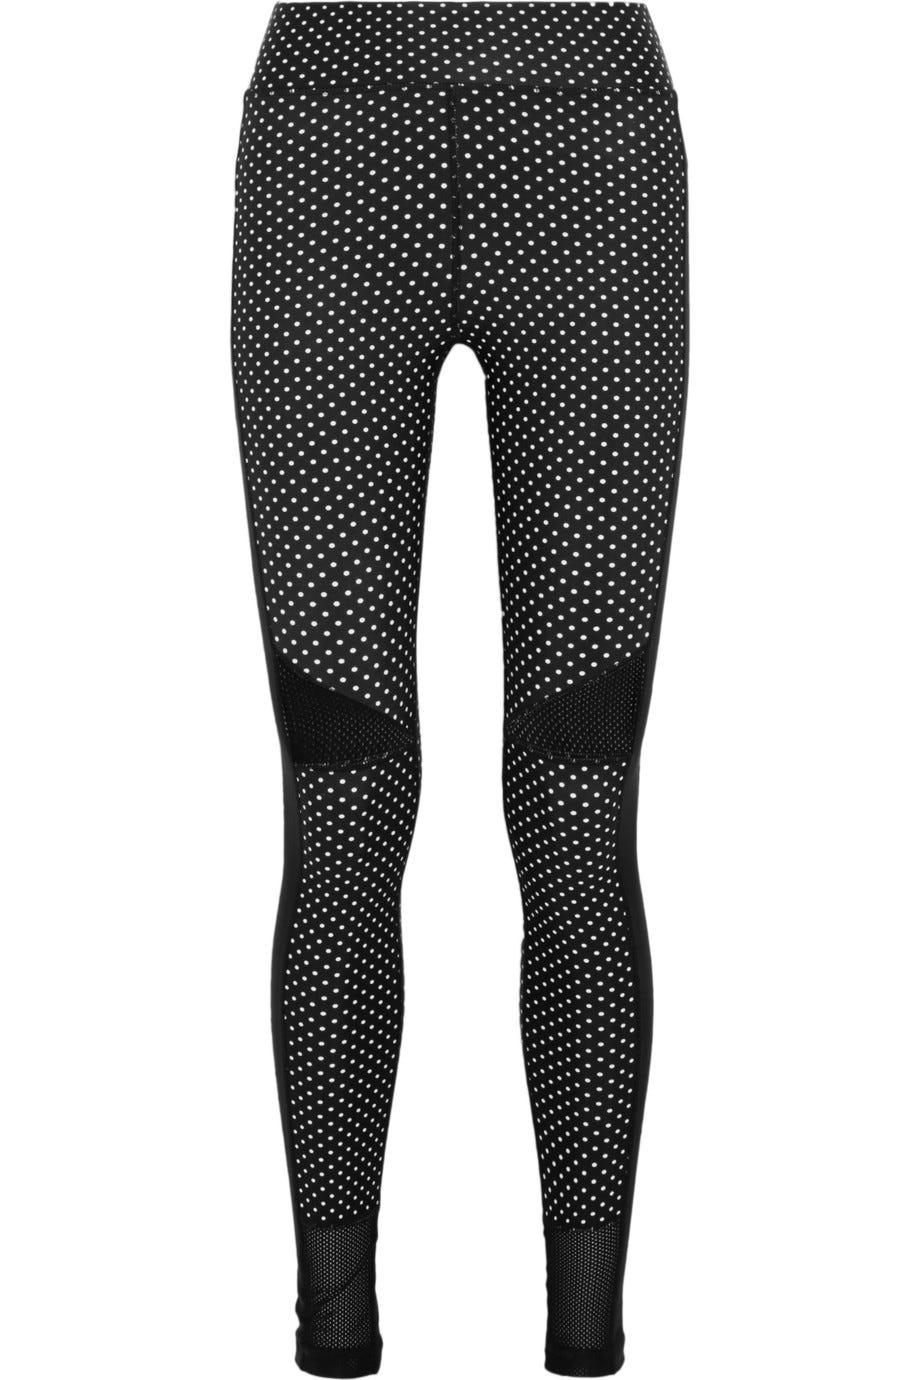 2bb98c18cc97c How To Wear Workout Leggings